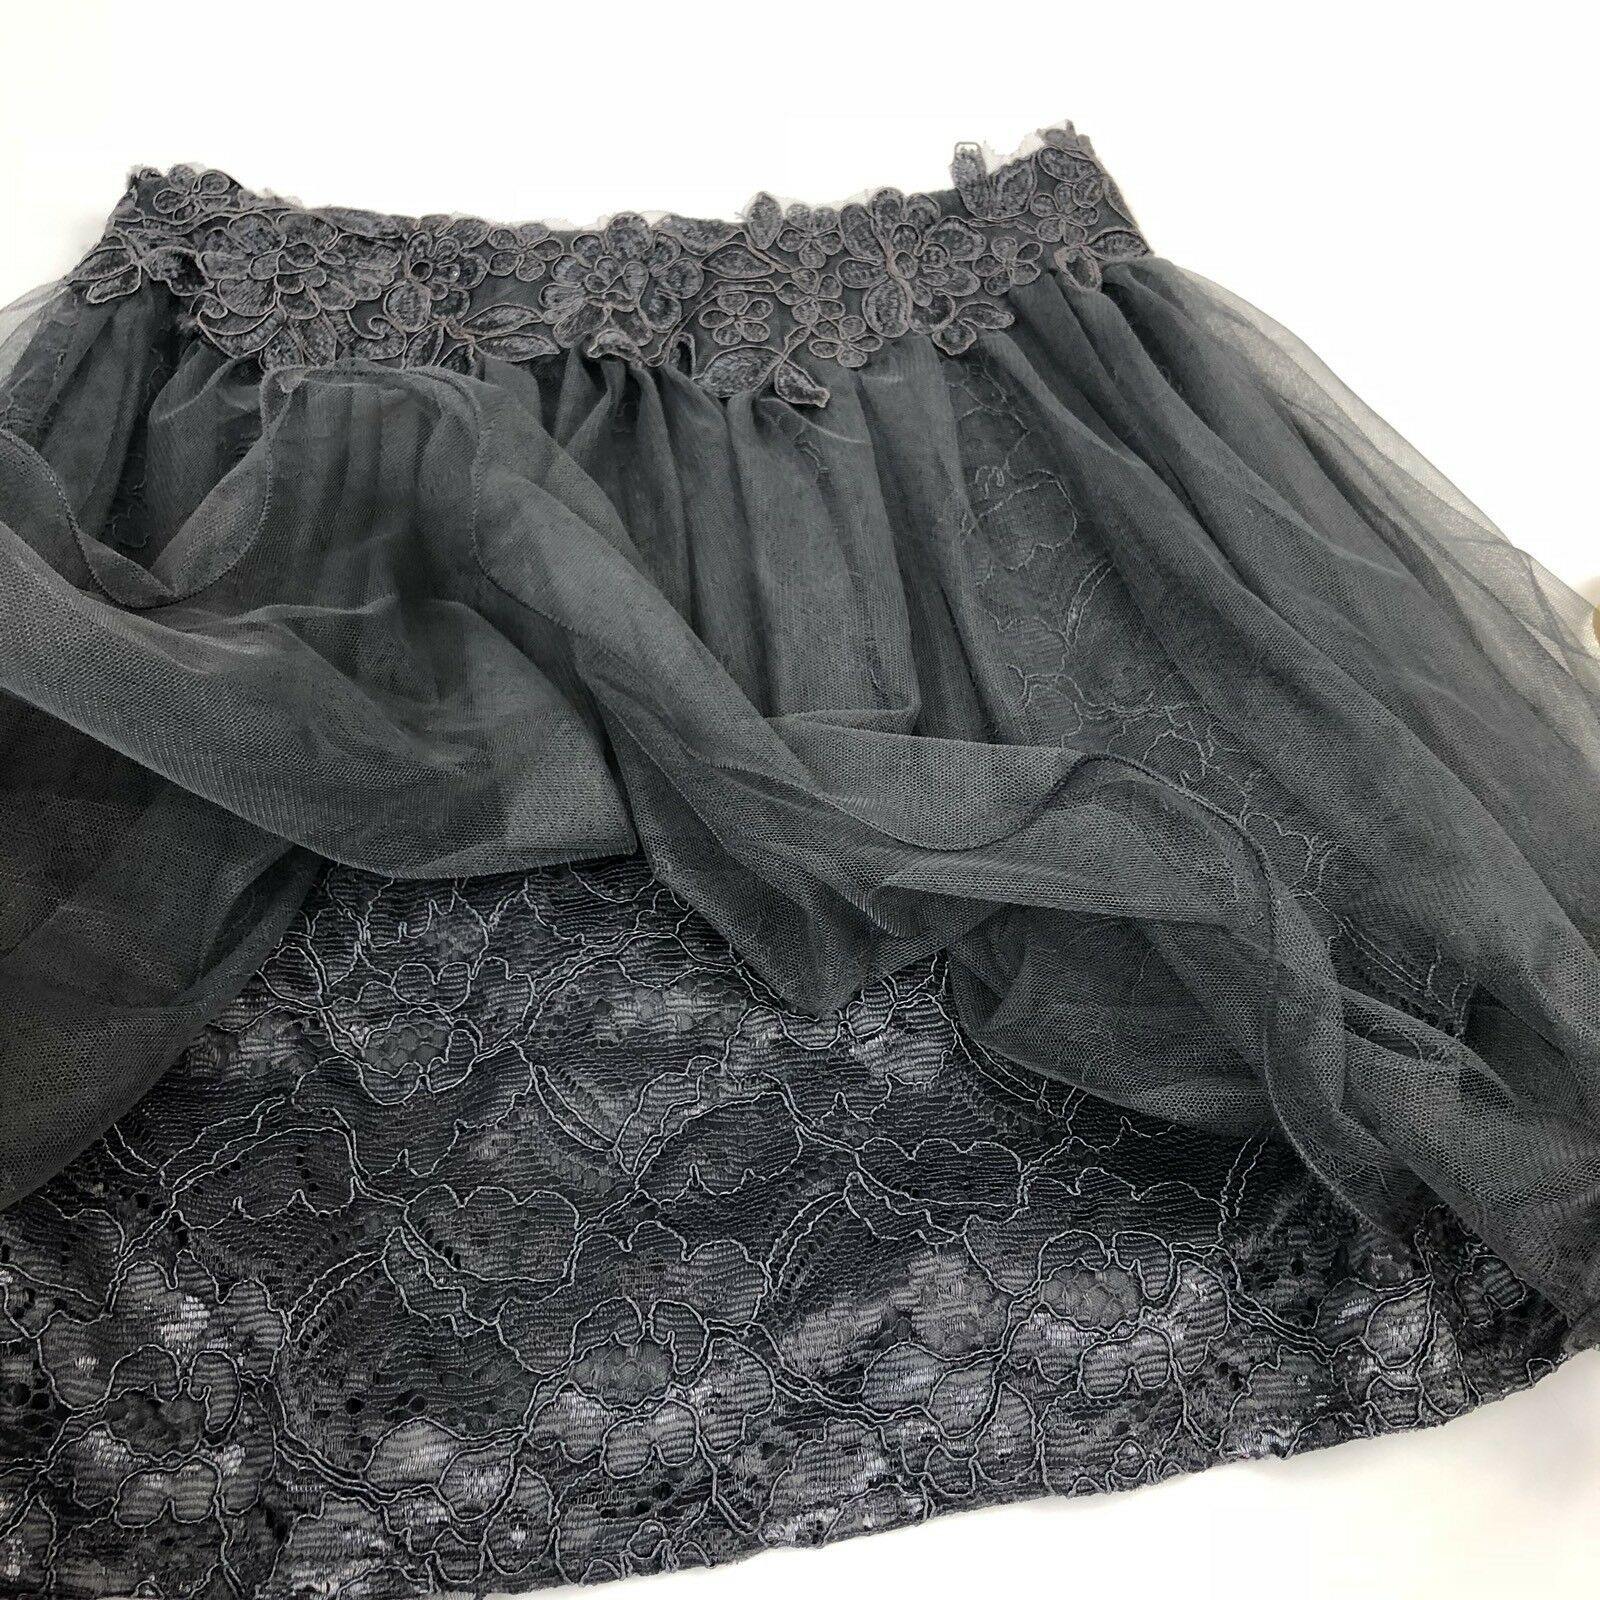 GB Social Embroidered Skirt 9 Two Two Two Piece 13 Juniors New Years Party Holiday Grey 7afb0b